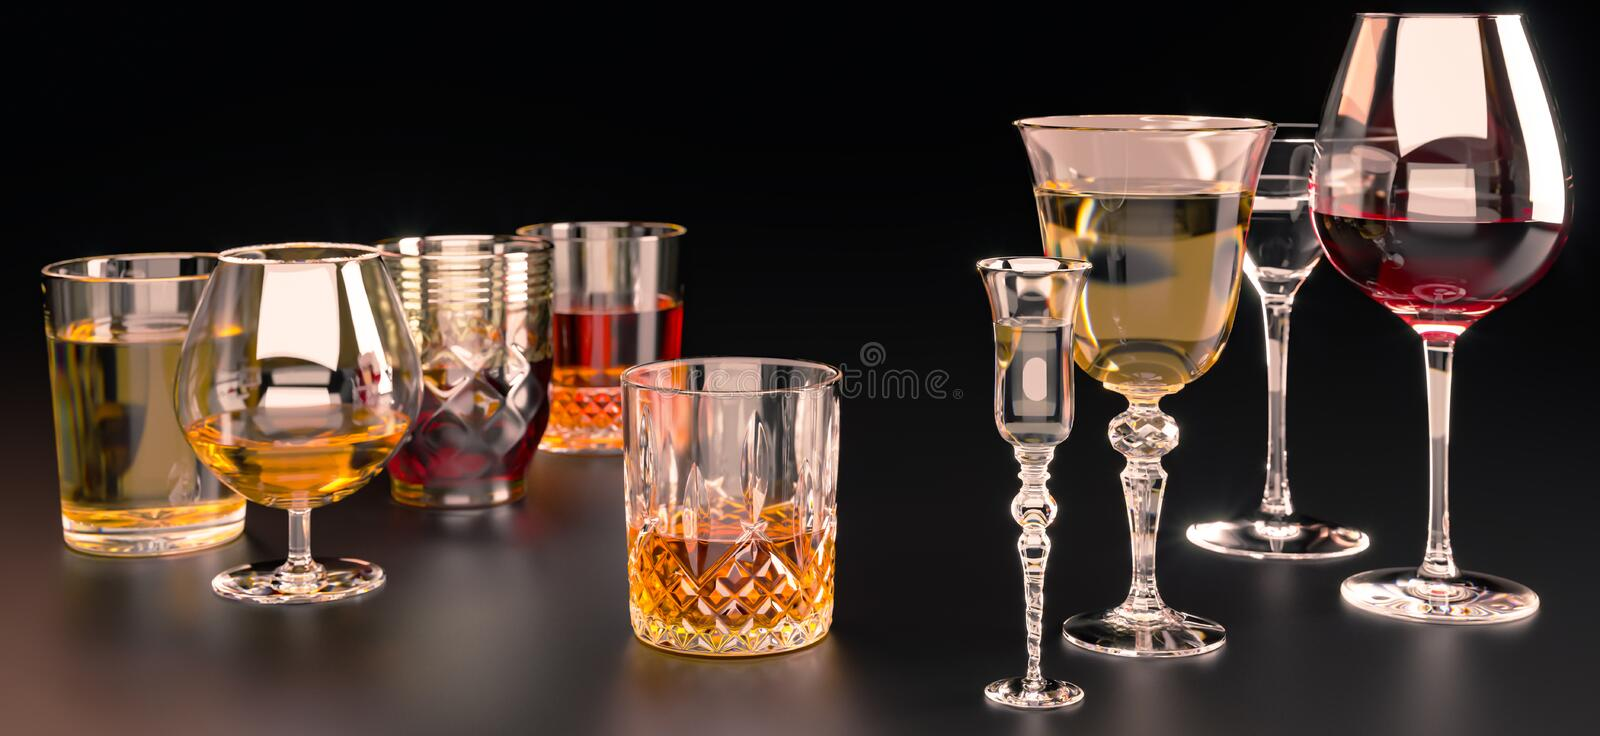 A set of strong alcoholic beverages in glasses, in the presence of whiskey, vodka, rum, brandy, tequila, on a dark background. Strong alcoholic beverages royalty free stock photo